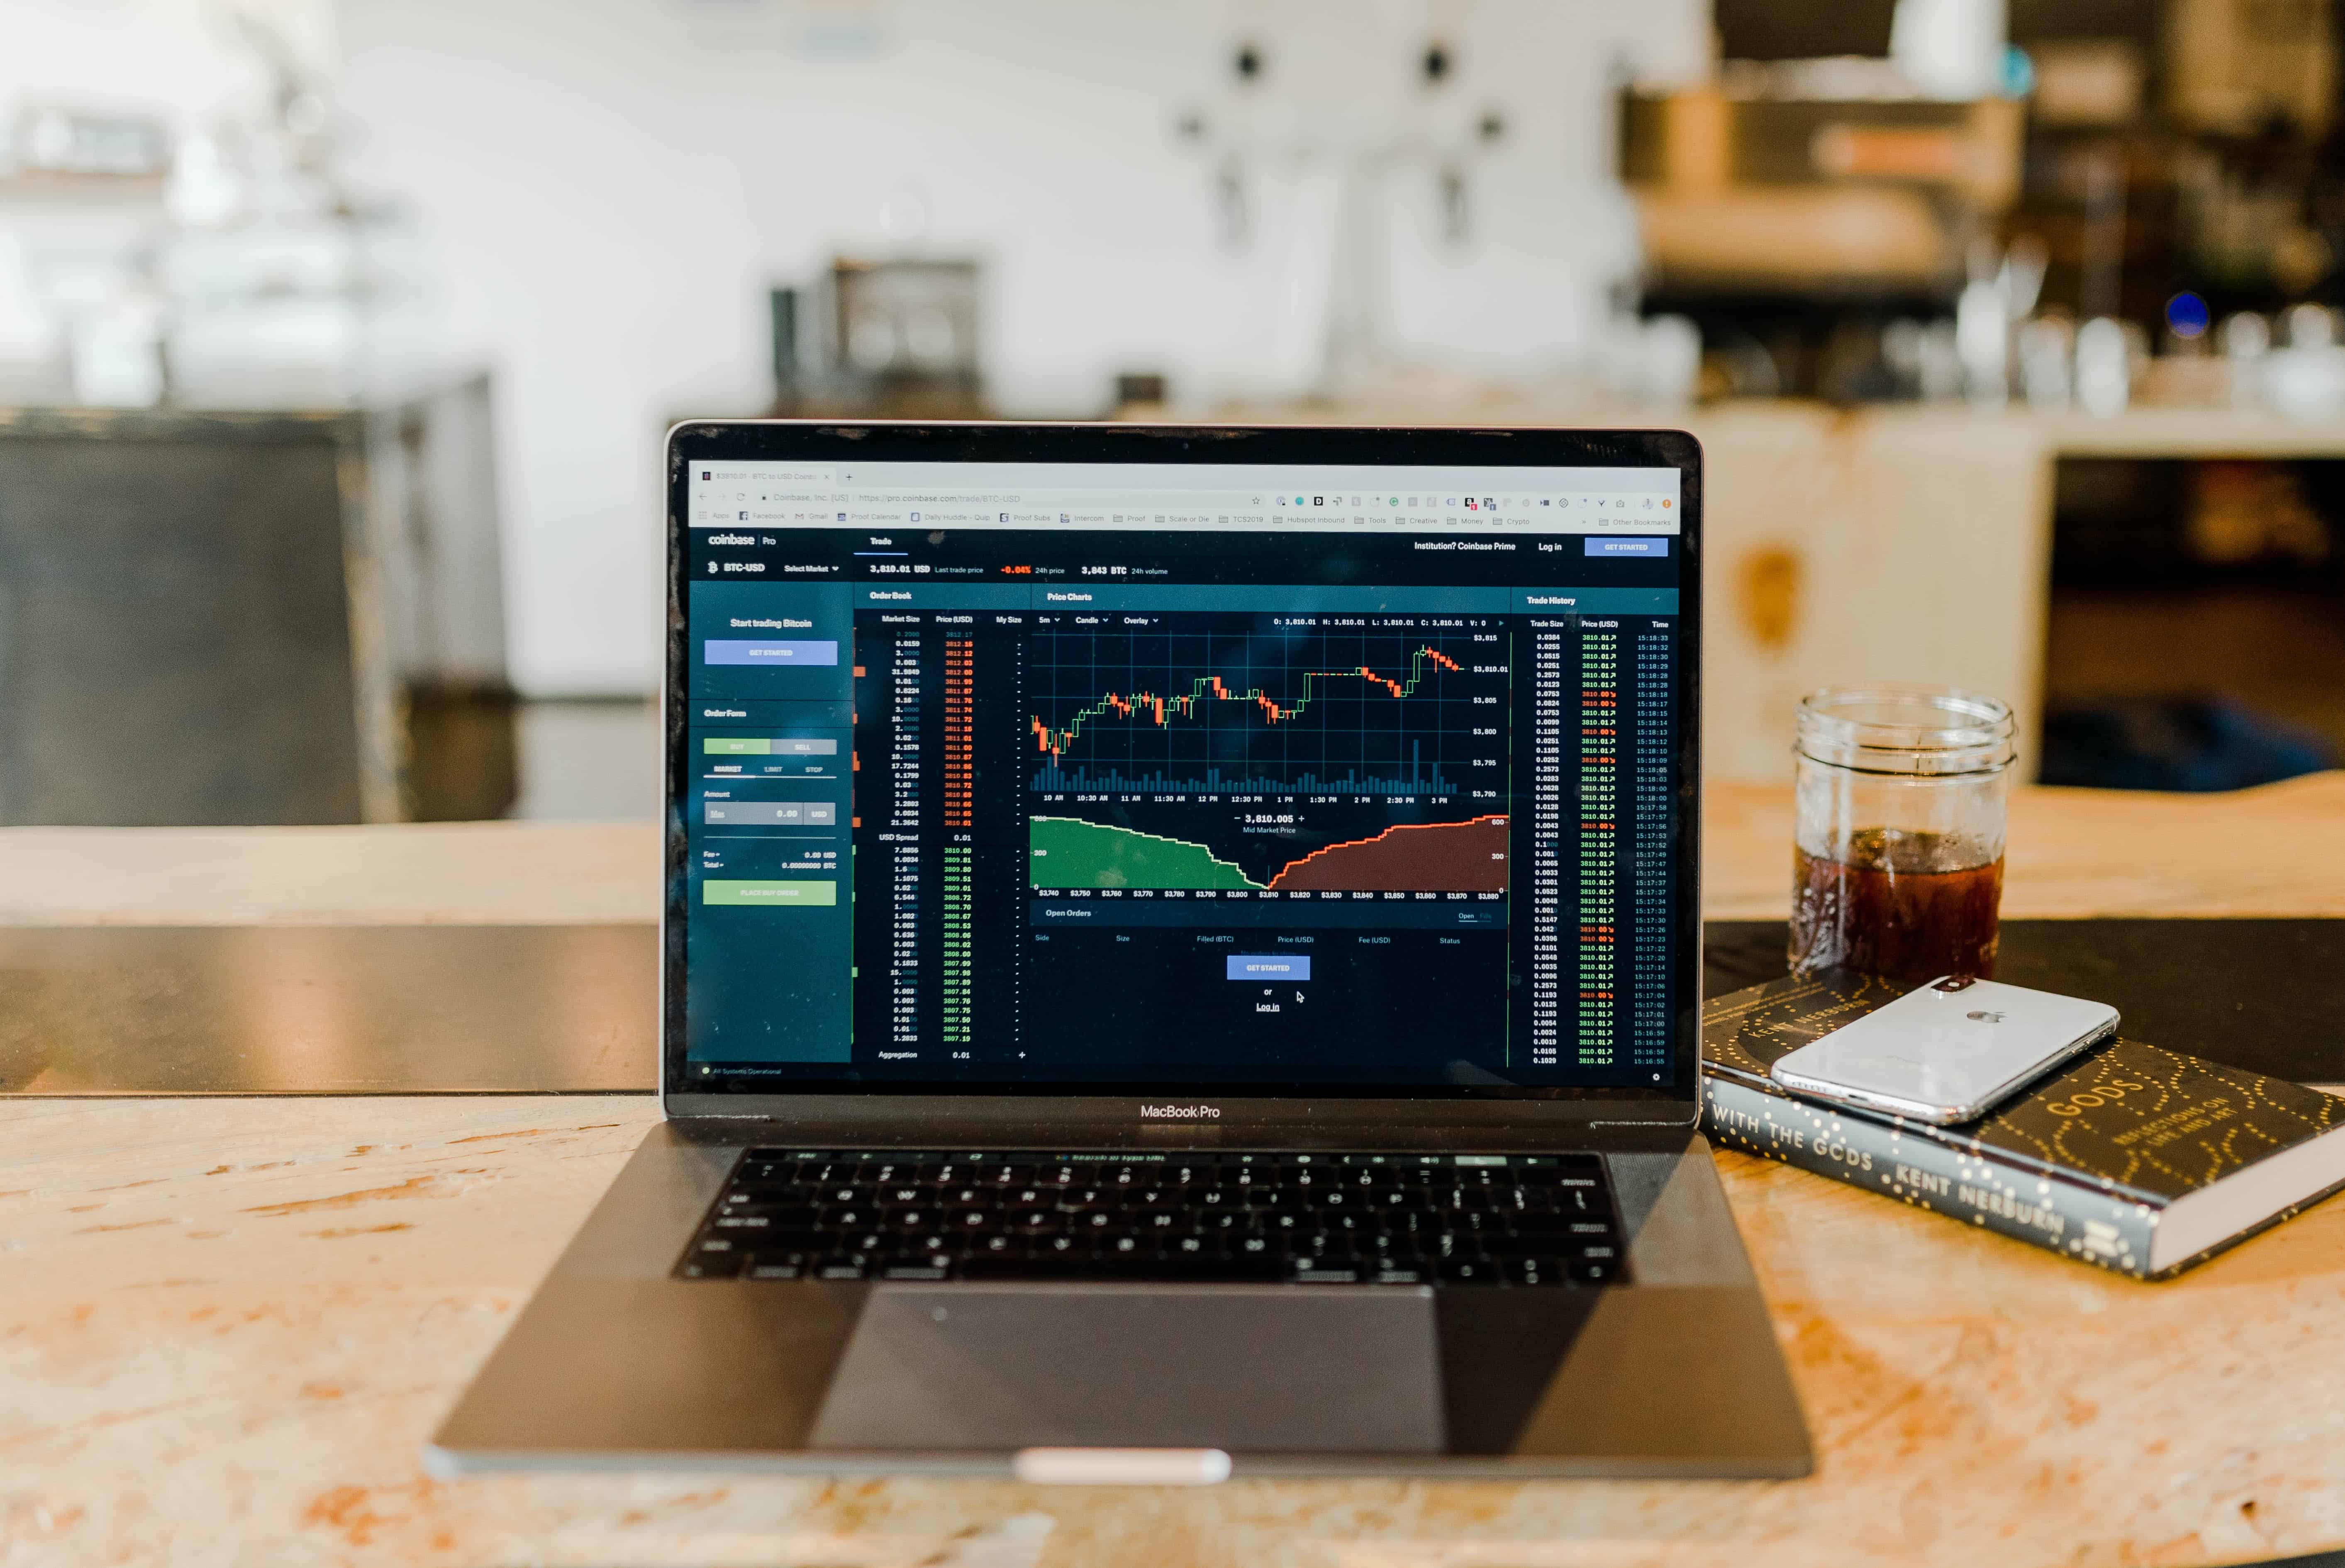 Paper Trading: Practice and Learn Investing Without Risk